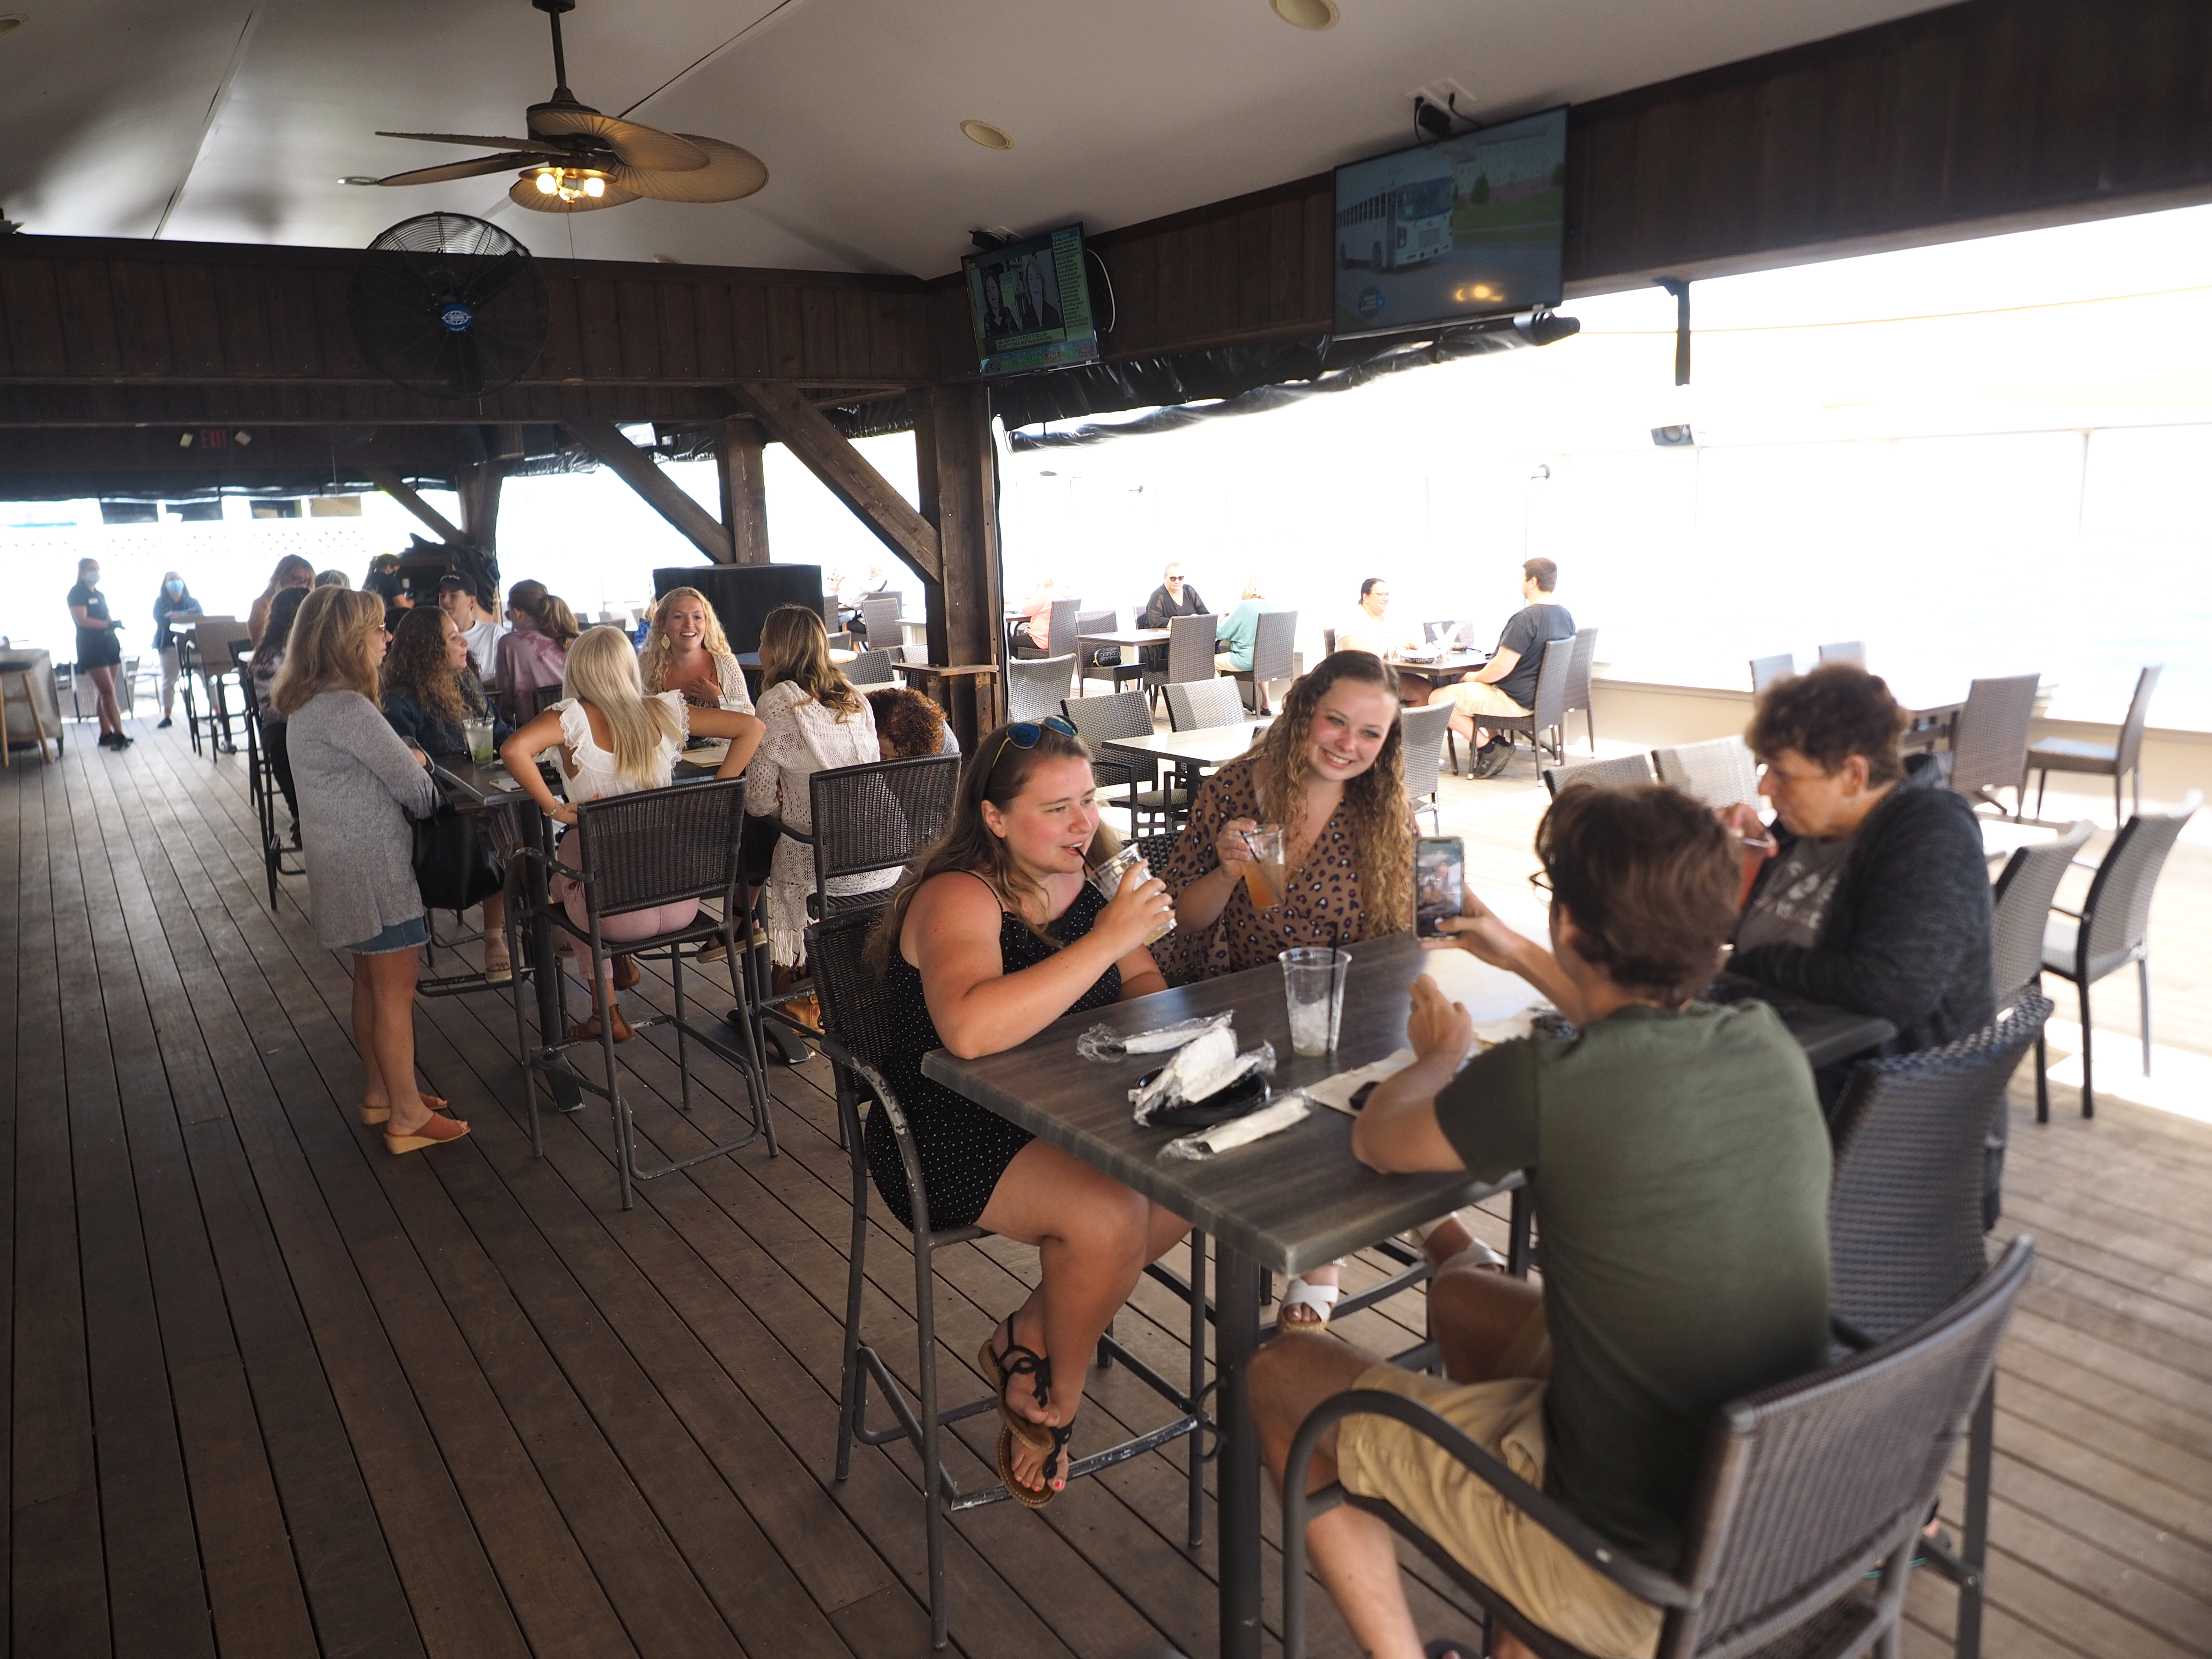 N J Outdoor Dining Gets Off To A Promising Start At Restaurants Around The State Nj Com